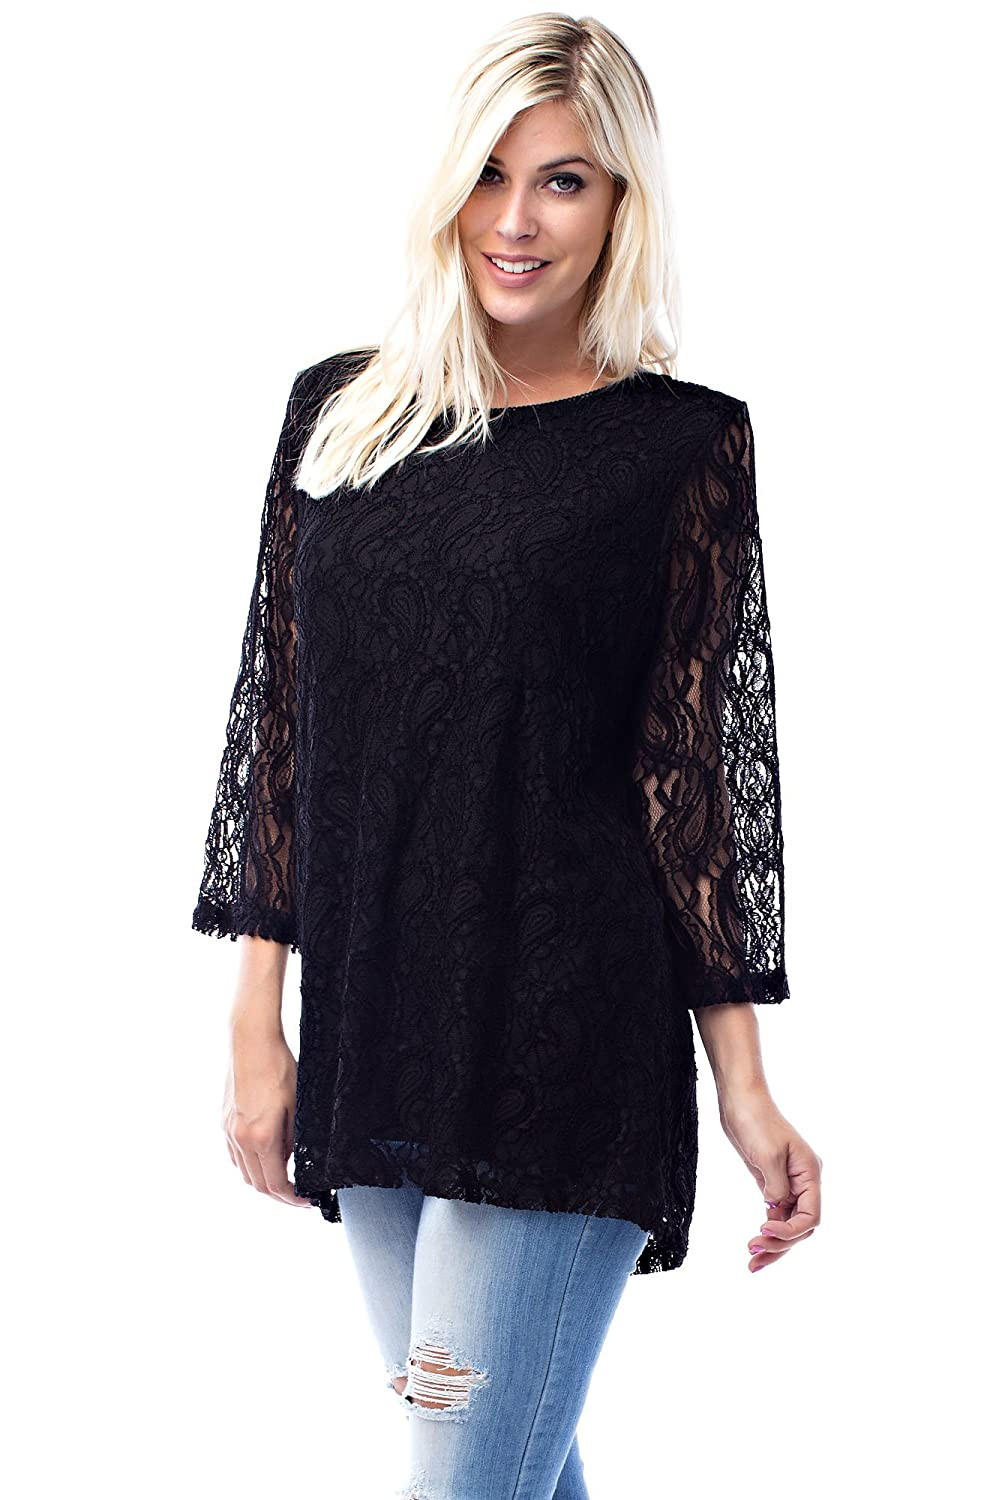 825471a82db P206RX:Soft stretch premium knit fabric blouse with lace yoke and shoulders.  Bell sleeves. P186RX:Soft stretch premium knit fabric blouse with lace  yoke, ...